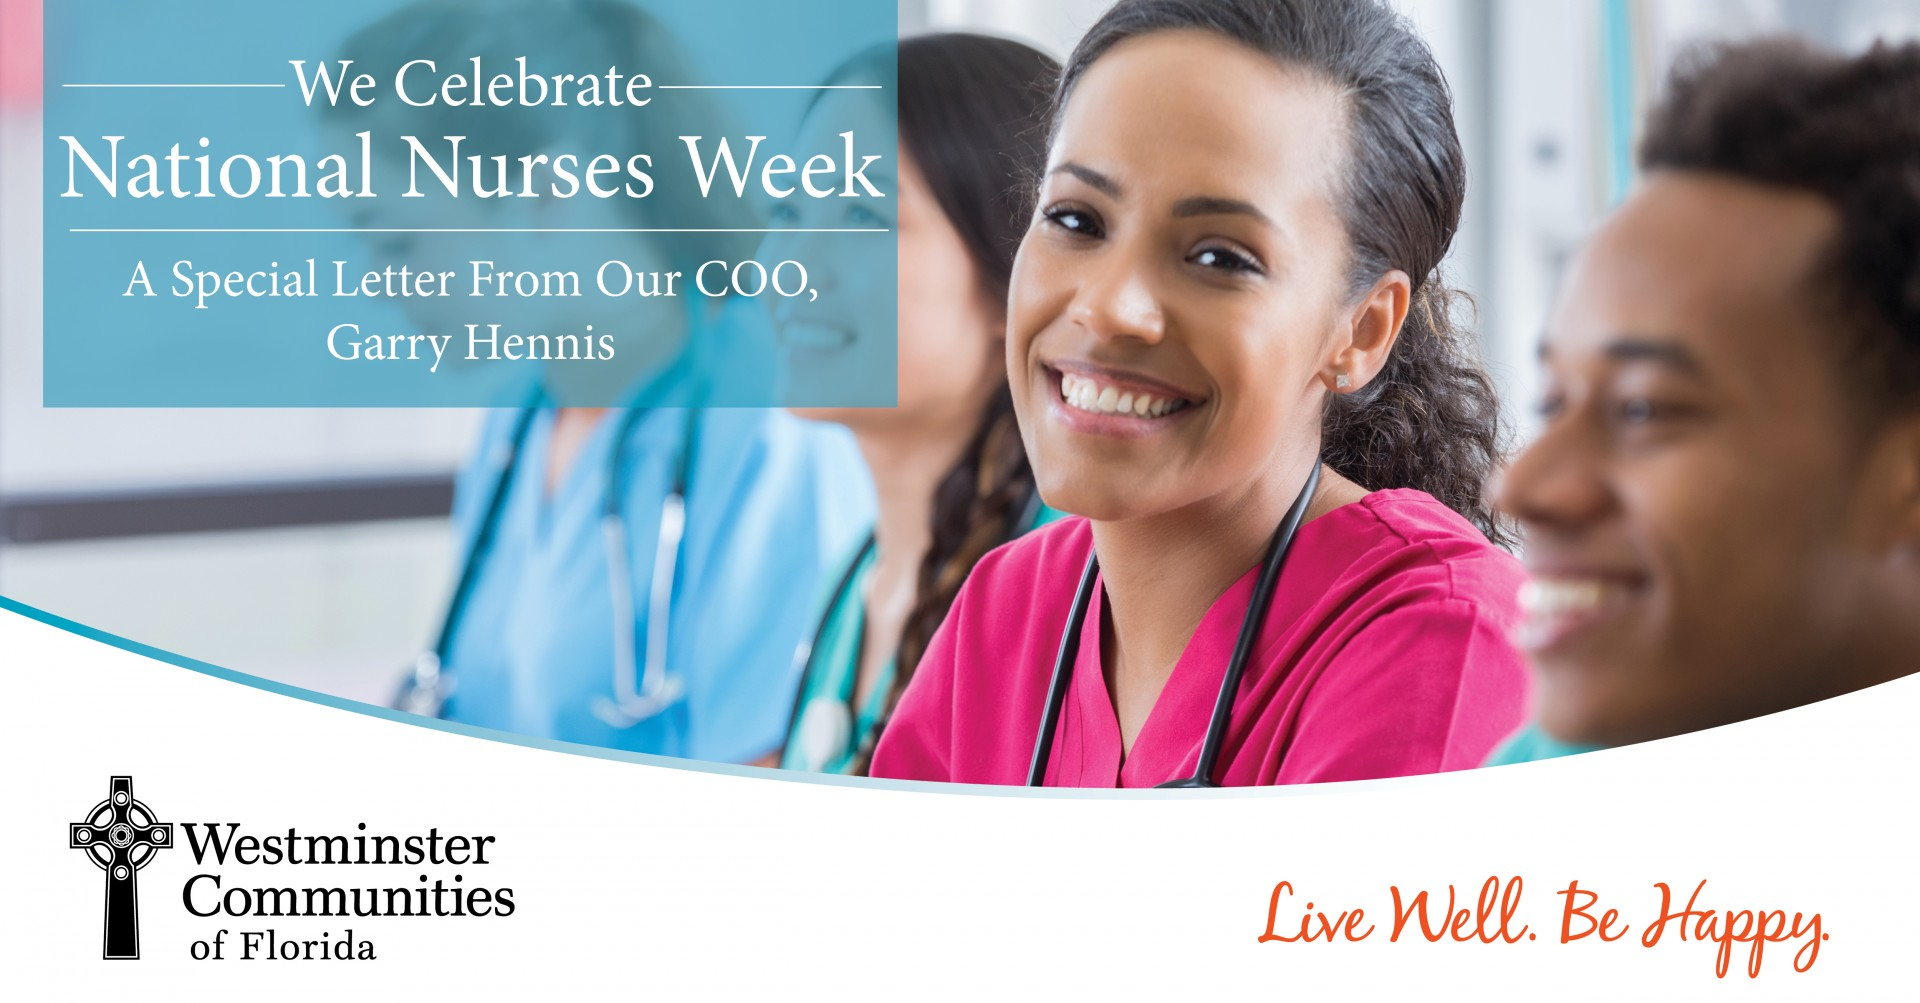 We Celebrate National Nurses Week: A Special Letter from Our COO, Garry Hennis